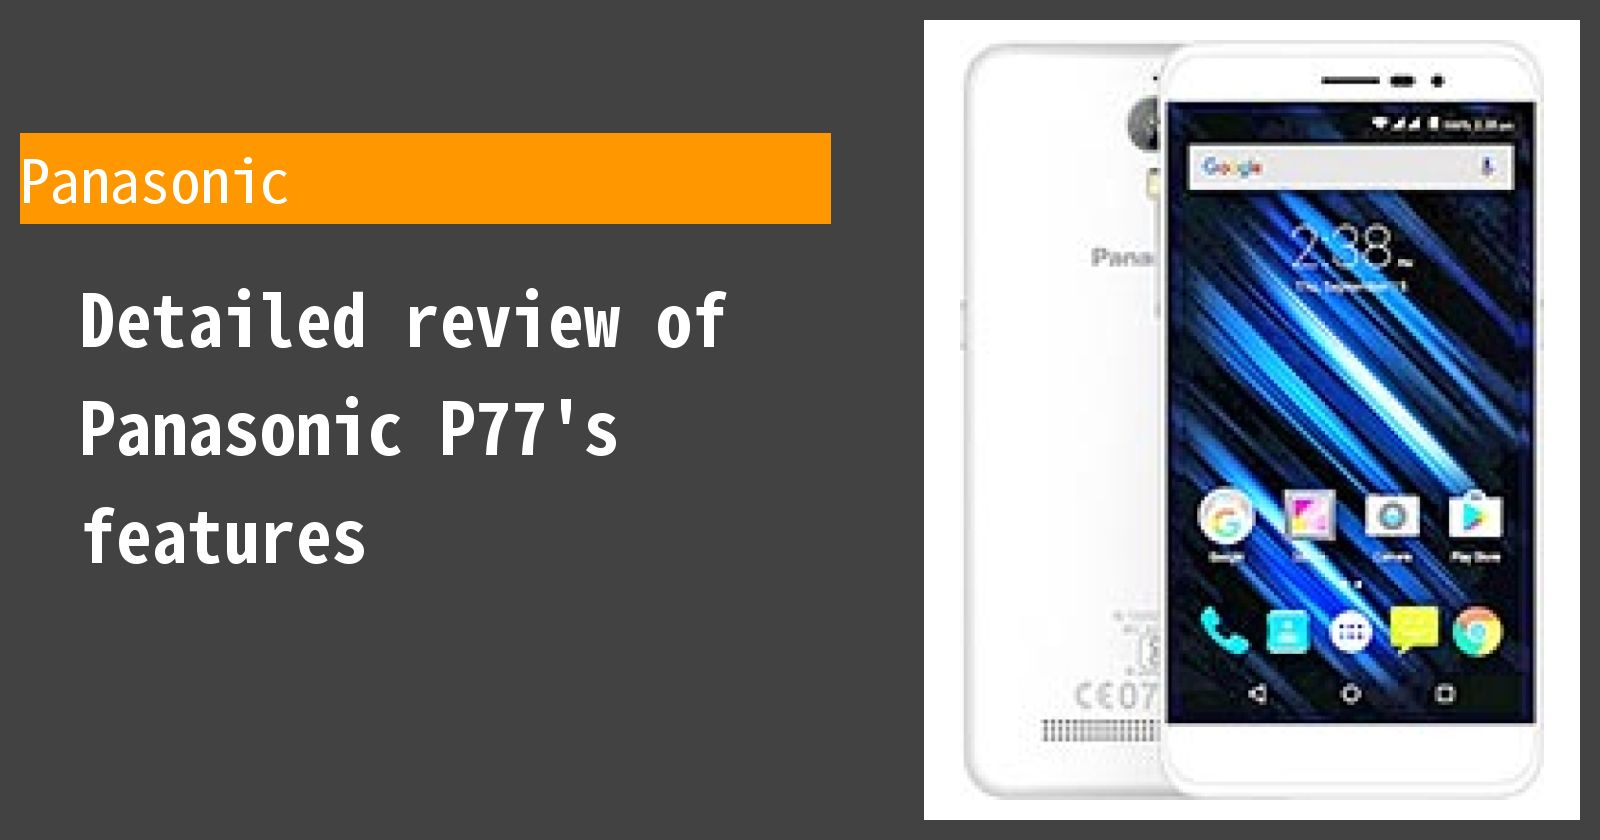 Detailed review of Panasonic P77's features